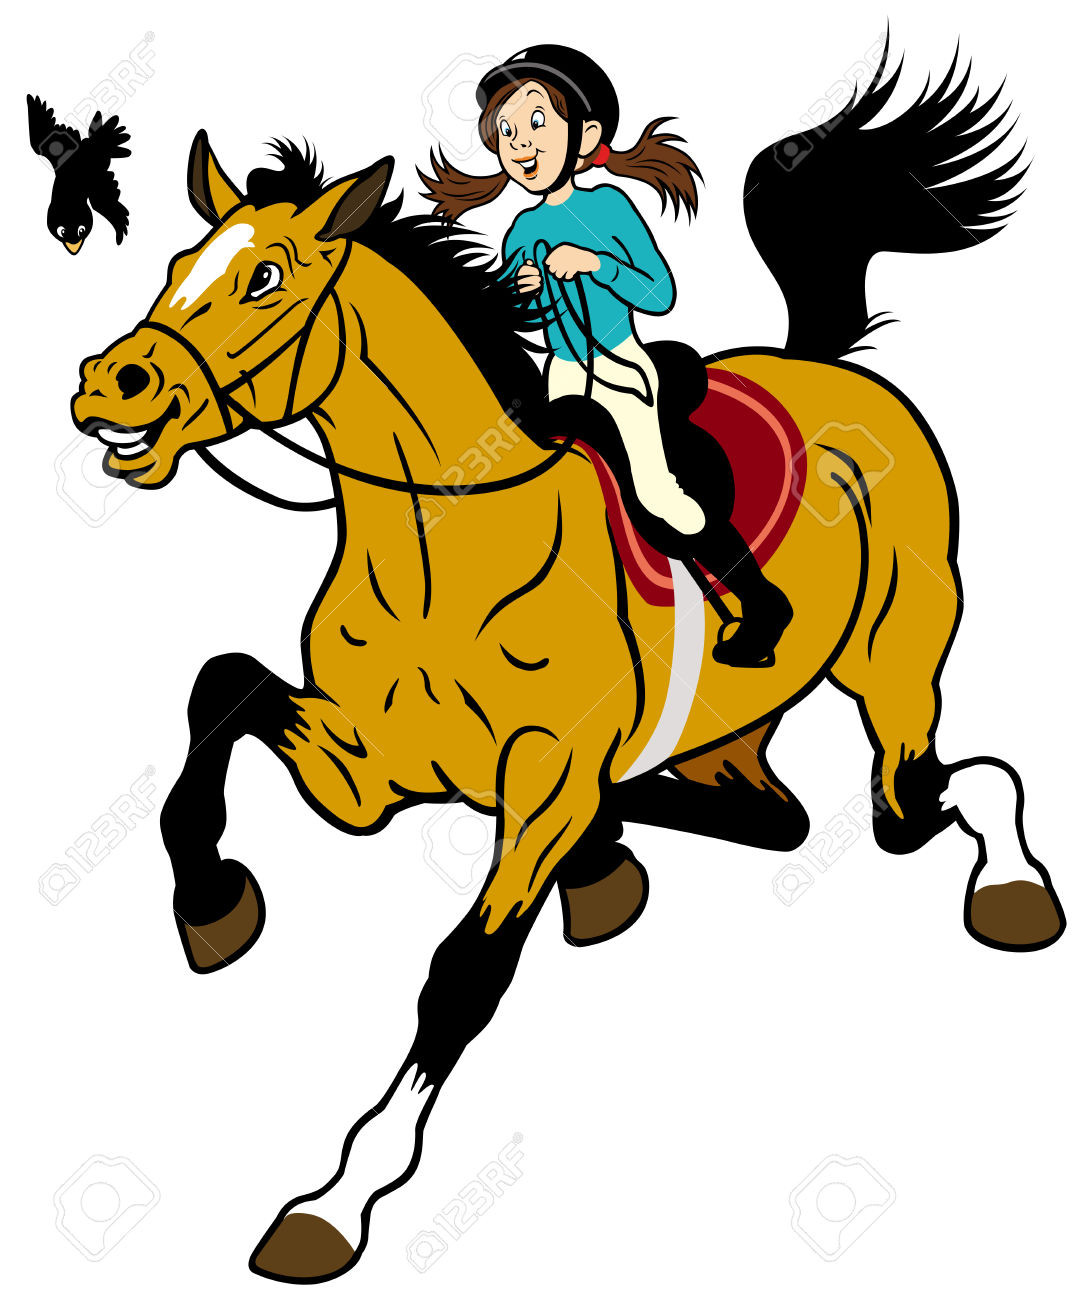 1085x1300 Horse Riding Clipart